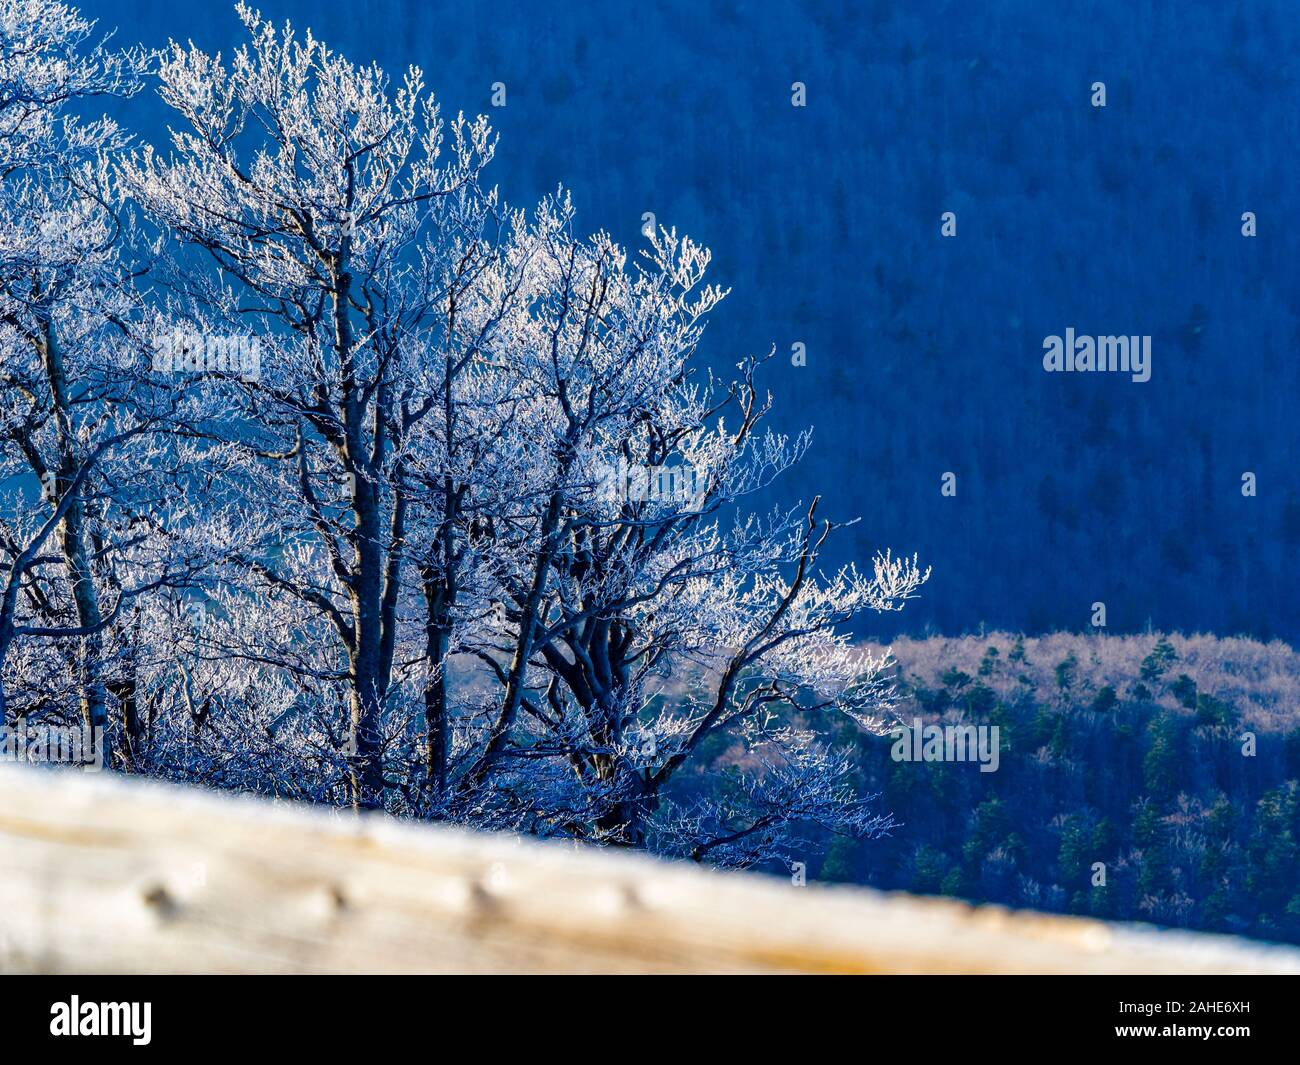 Early Winter snow on trees scenery Stock Photo